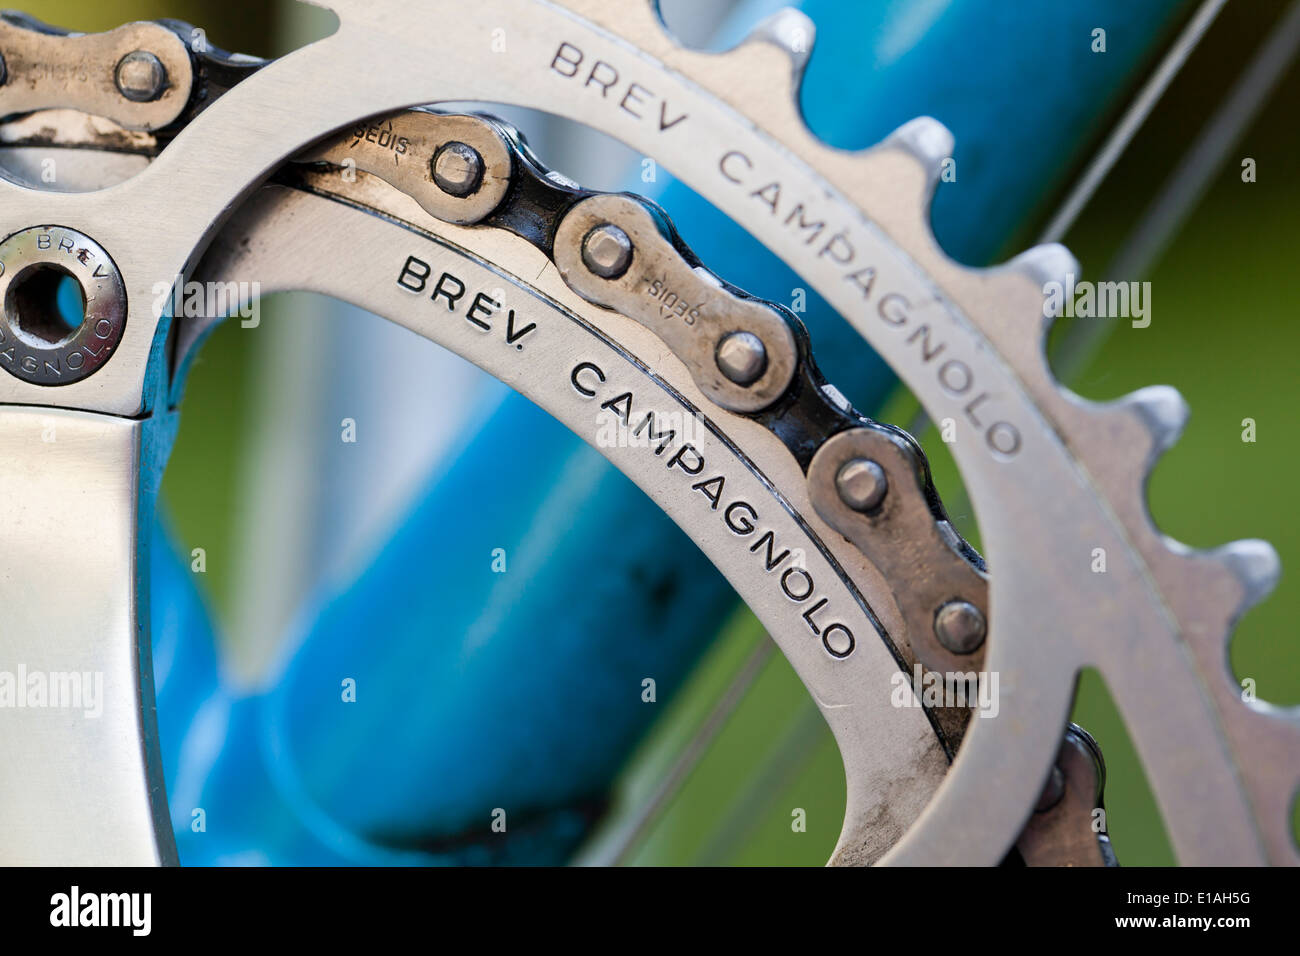 Campagnolo anodized aluminum bicycle chainrings - Stock Image